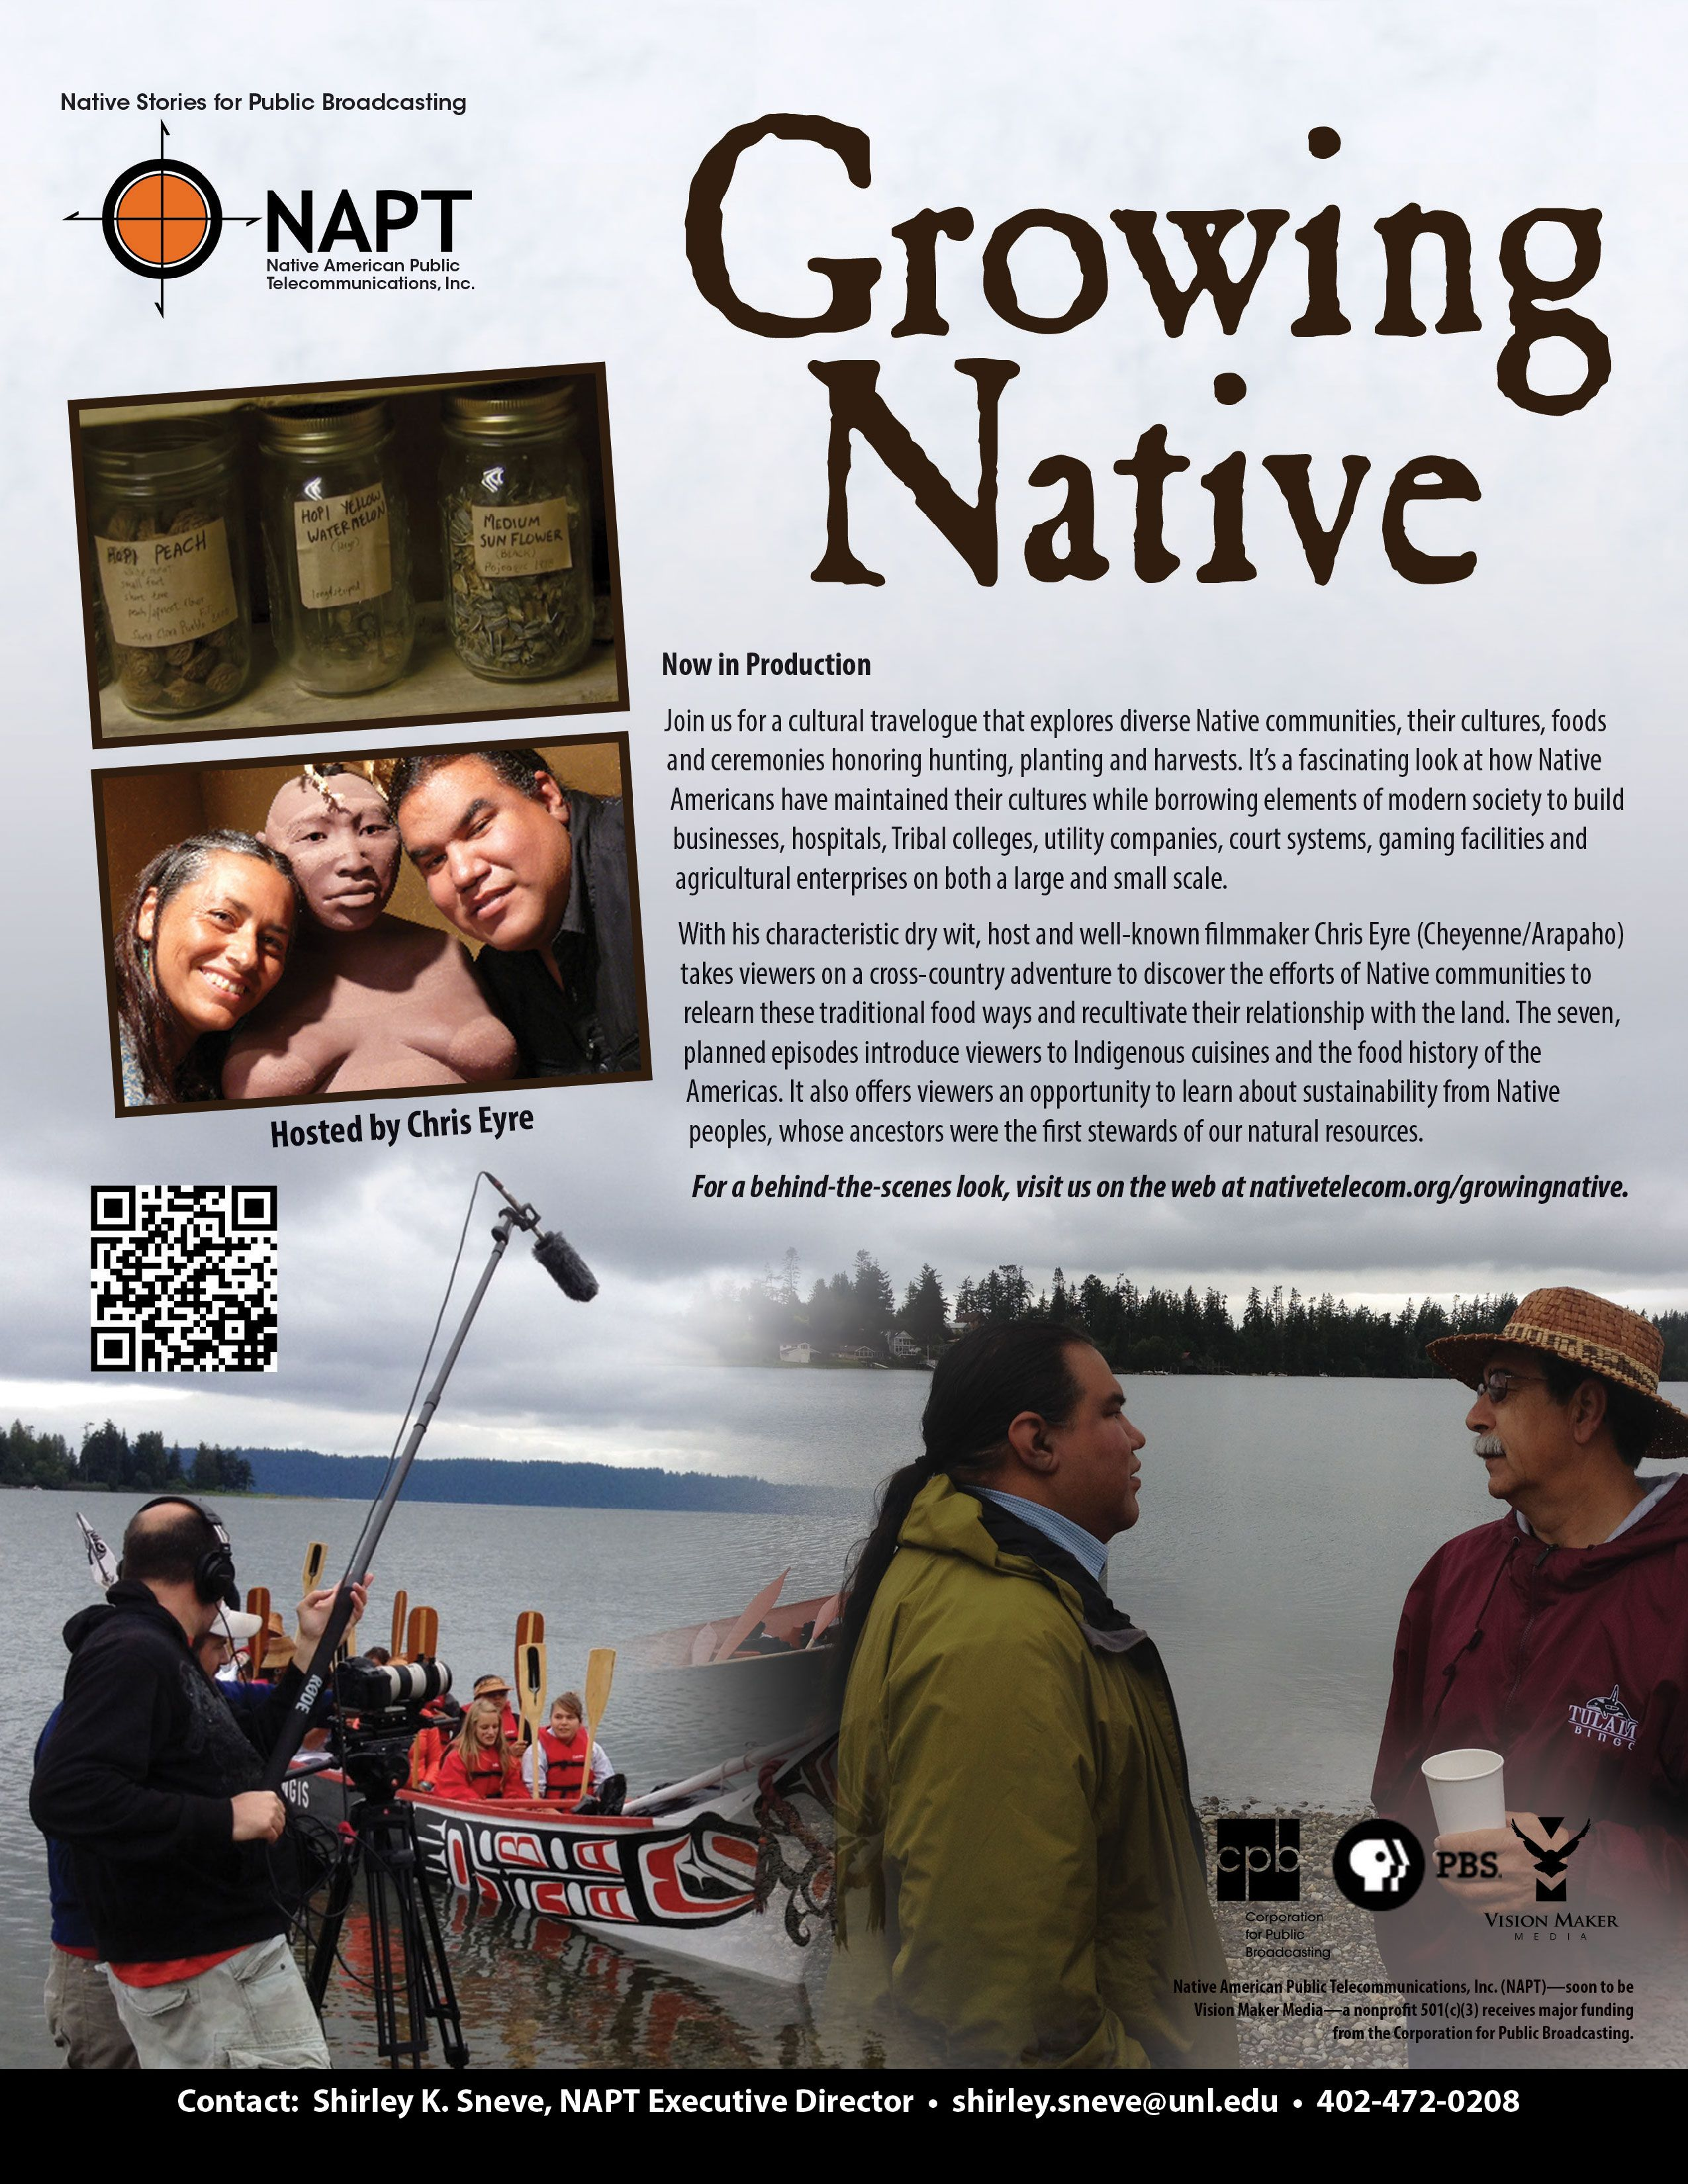 """NAPT Executive Director Shirley Sneve and Host of """"Growing Native"""" Chris Eyre will present footage of the seven-part series at the National Indian Gaming Association Mid Year Conference September 18-19 in Hollywood, Florida!"""